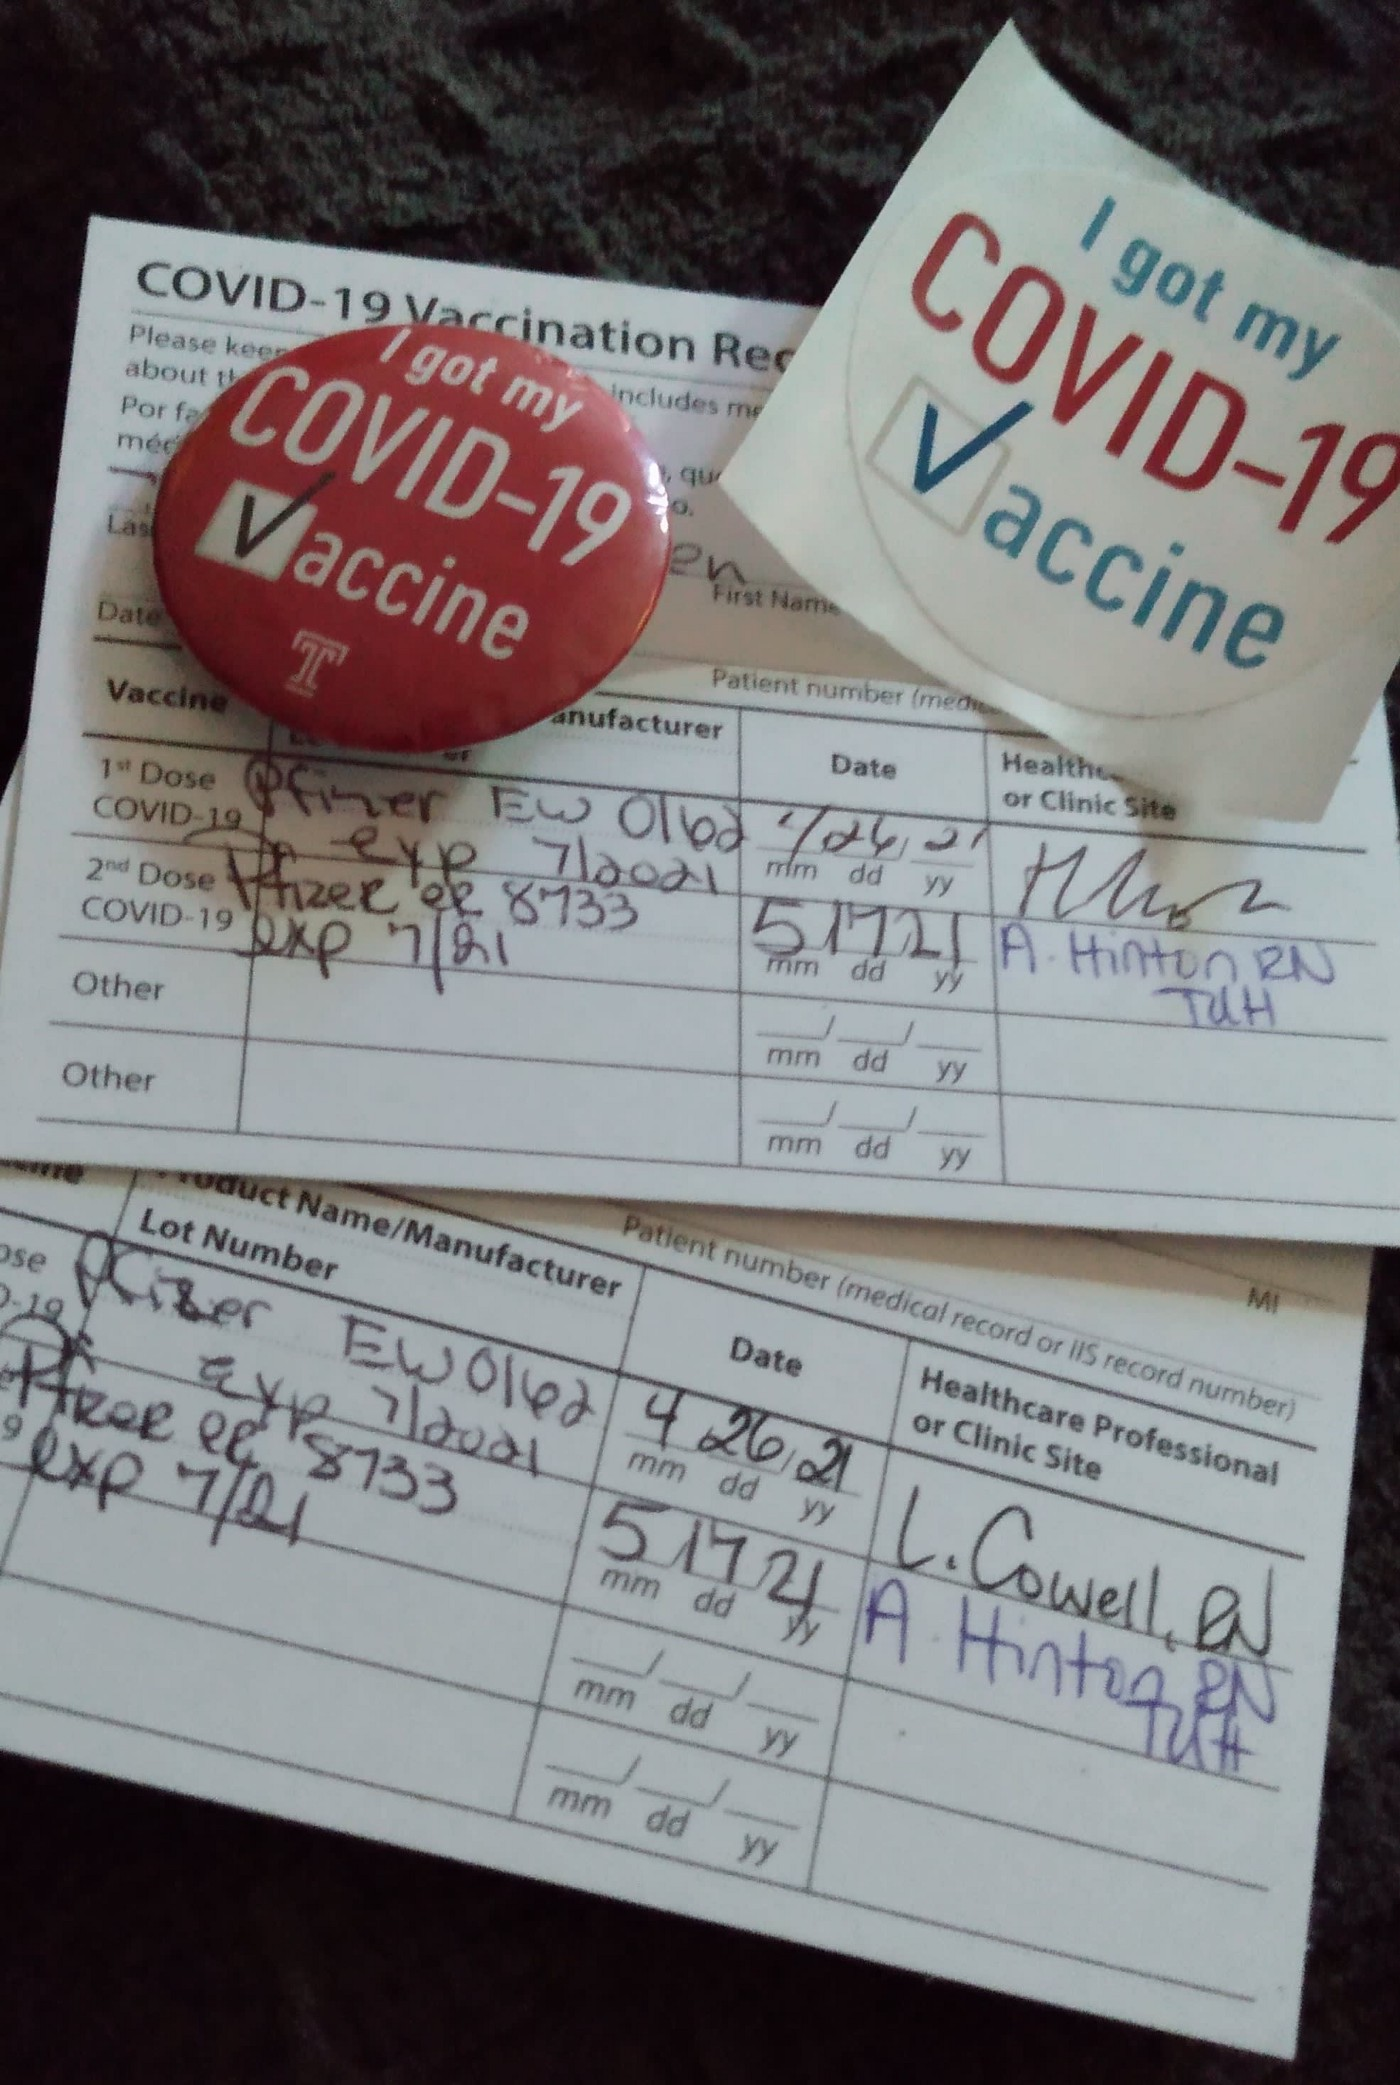 COVID-19 Vaccination cards with a red button and sticker